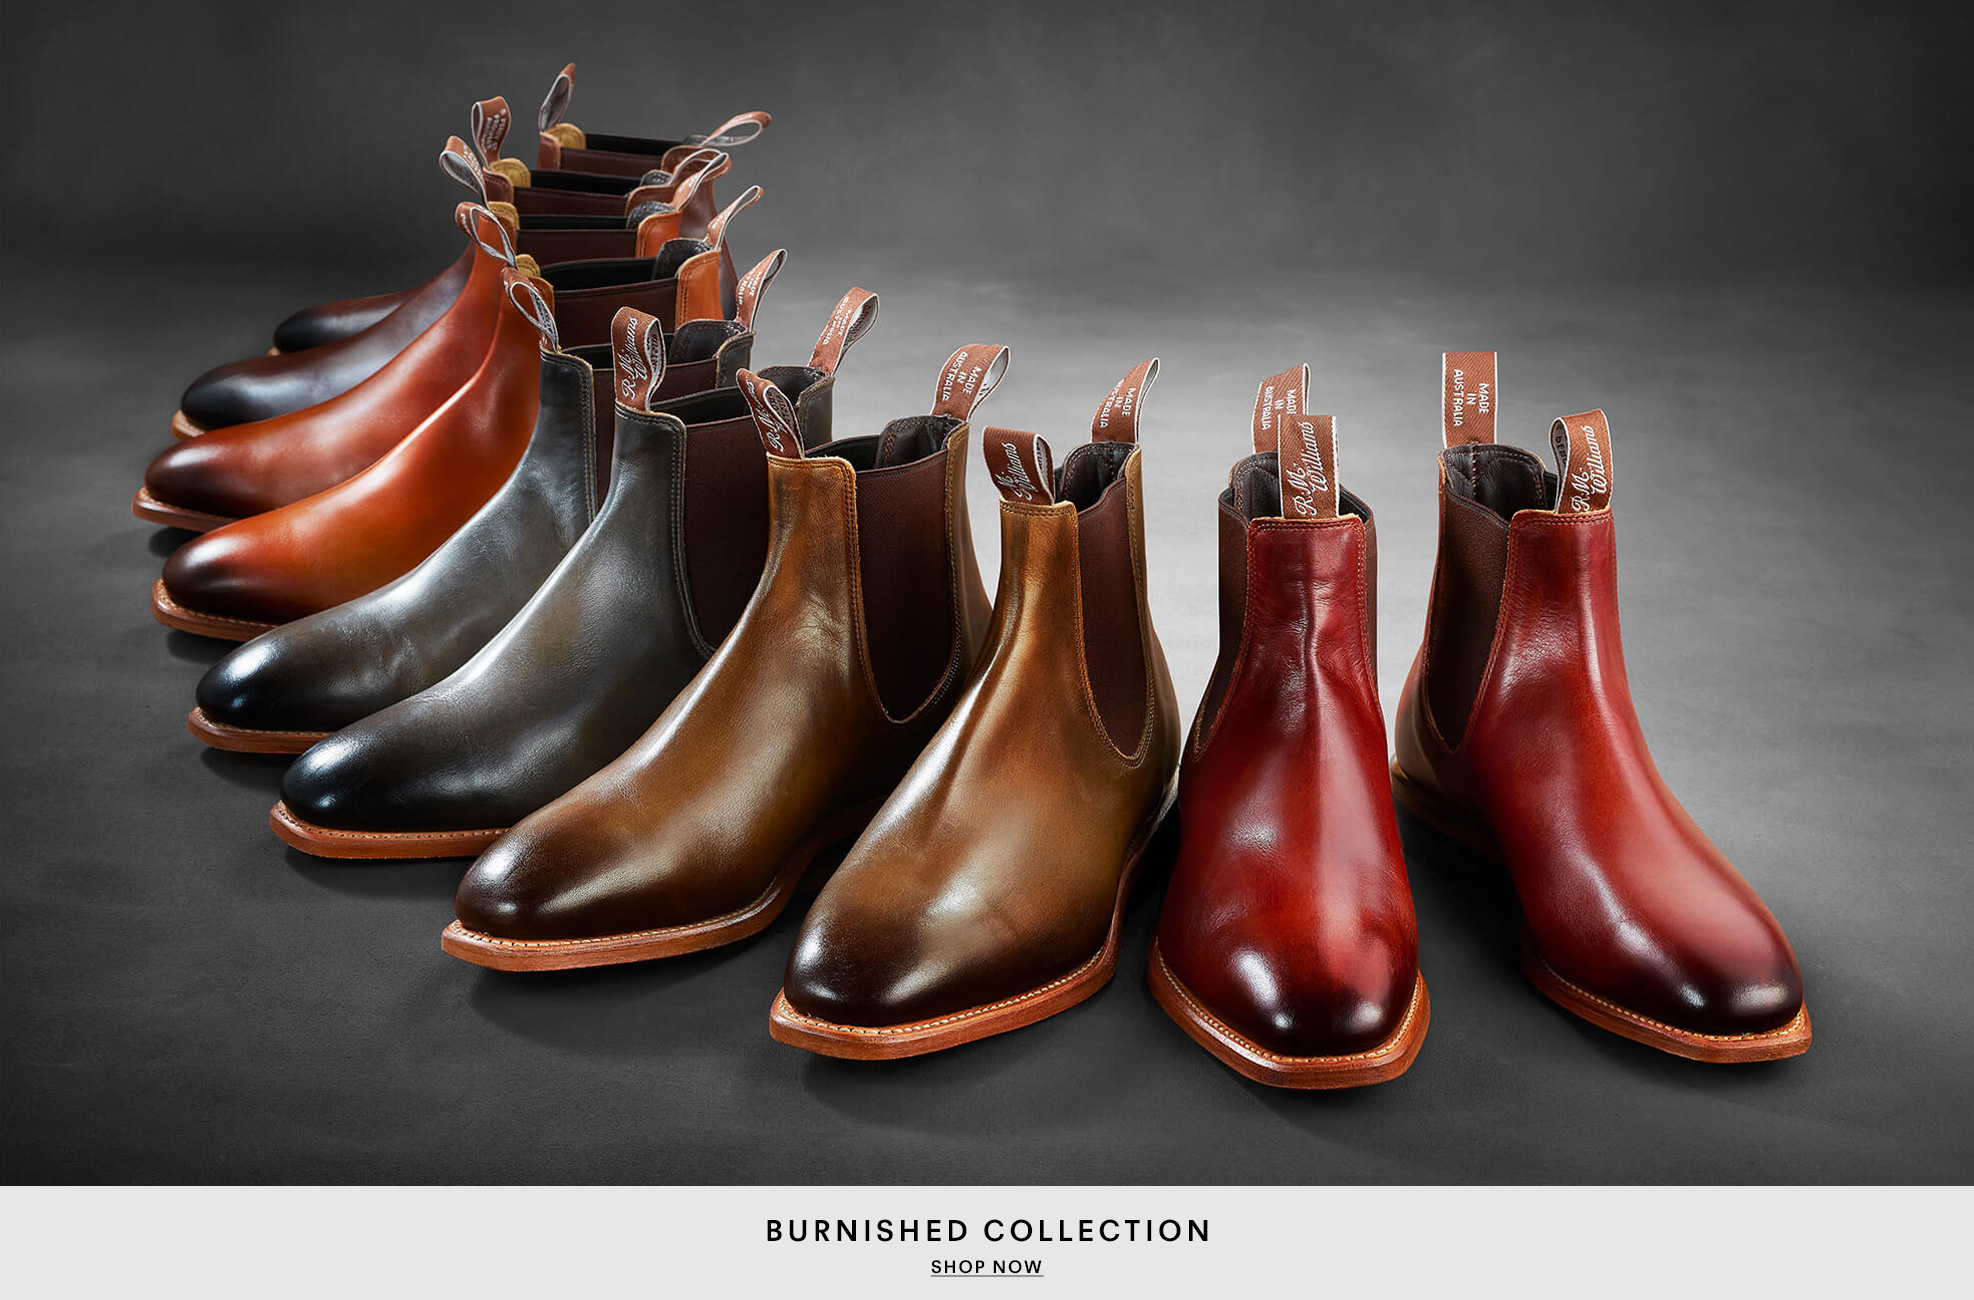 New Burnished Collection